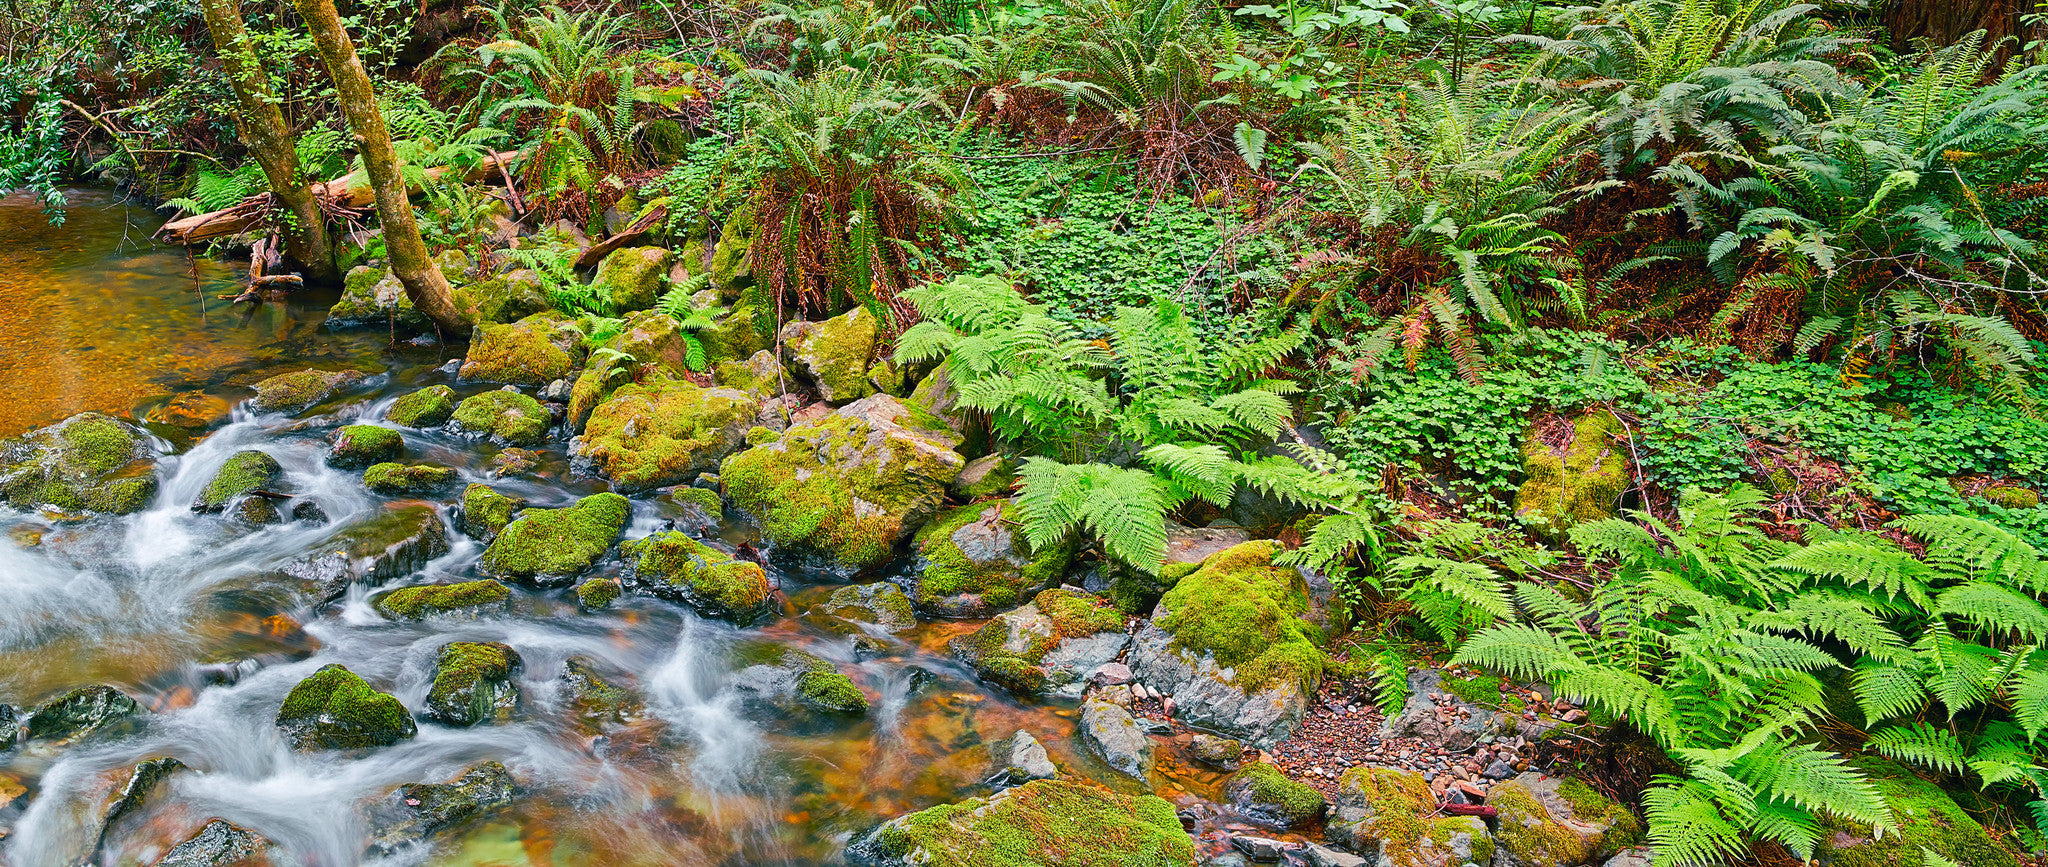 John Muir's Stream - Muir Forest California